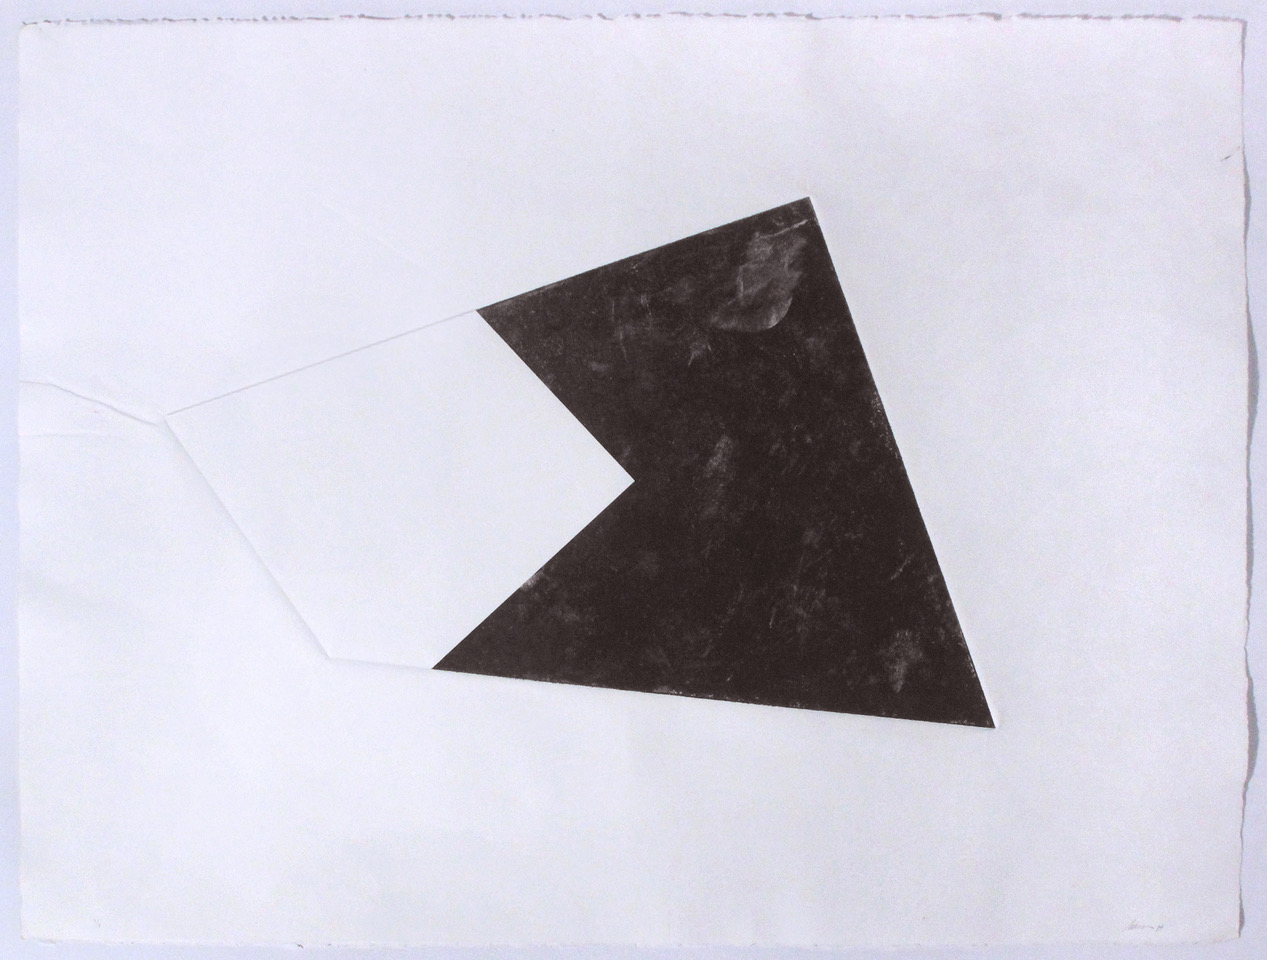 Luisa Duarte, Empty Site, 2014. Monotype on Paper, 30 x 22 x 0 in. Framed: 26.5 x 34 x 1.5 in.